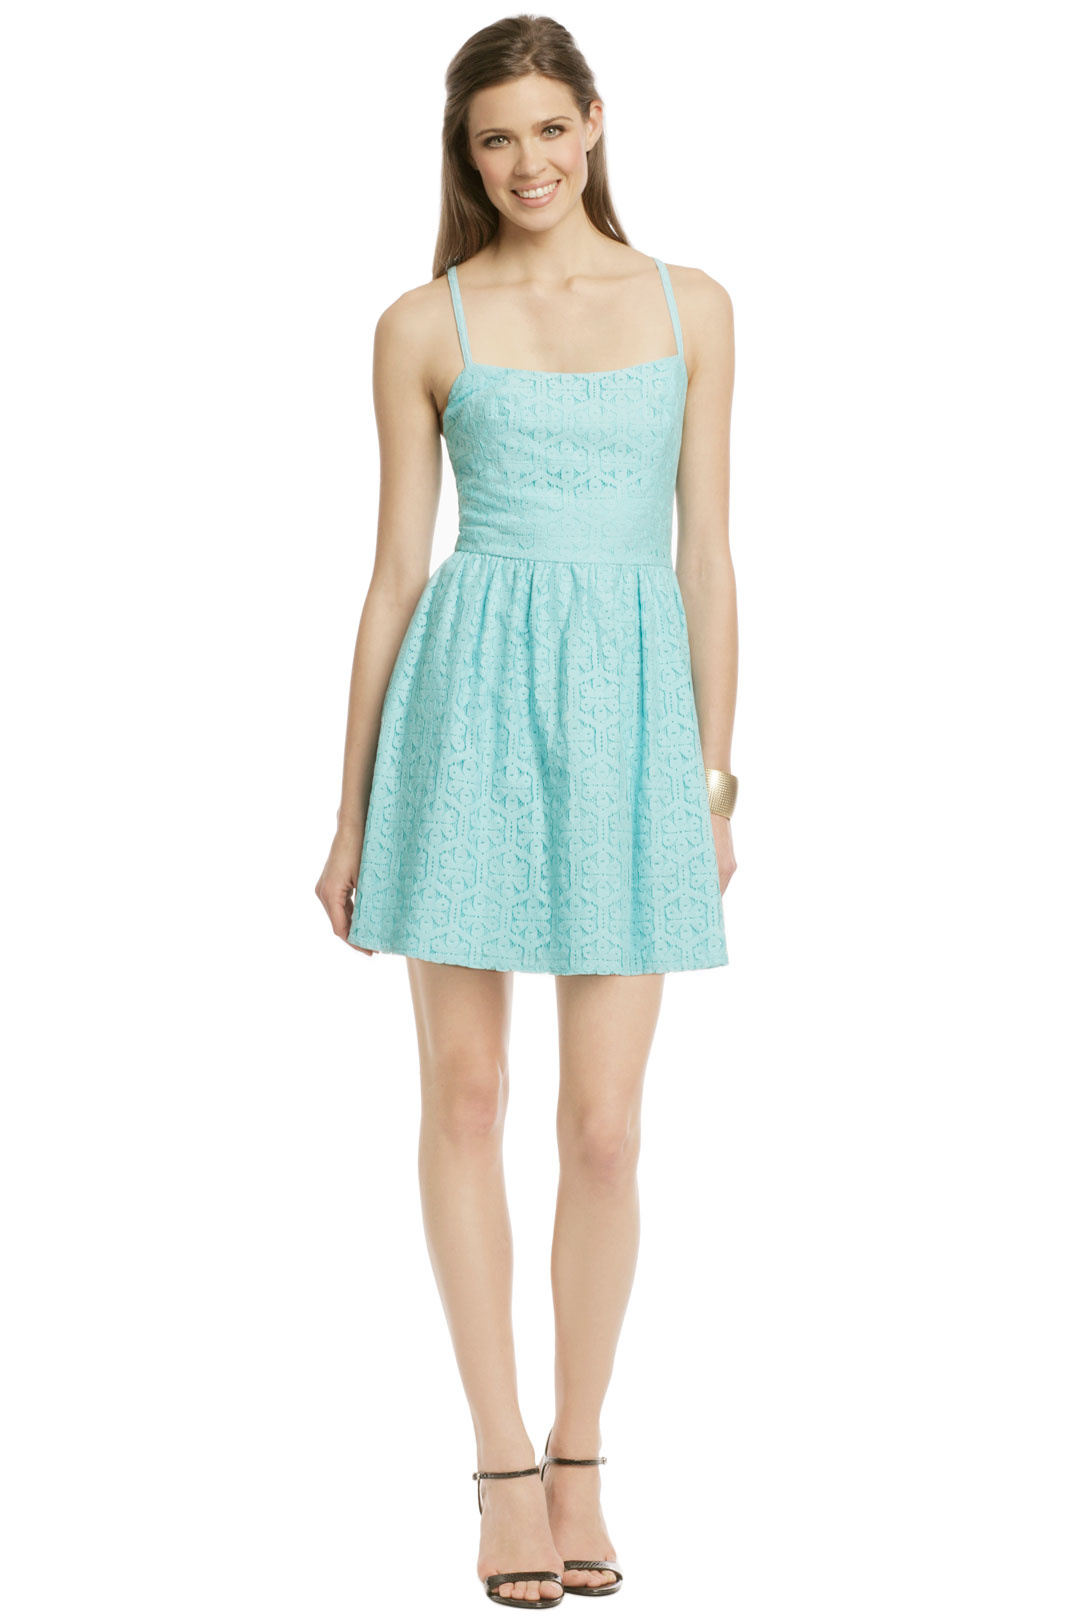 168b5c7d6a I love this simple sundress with a geometric lace overlay for a guest at a  country wedding. The color is bright and modern